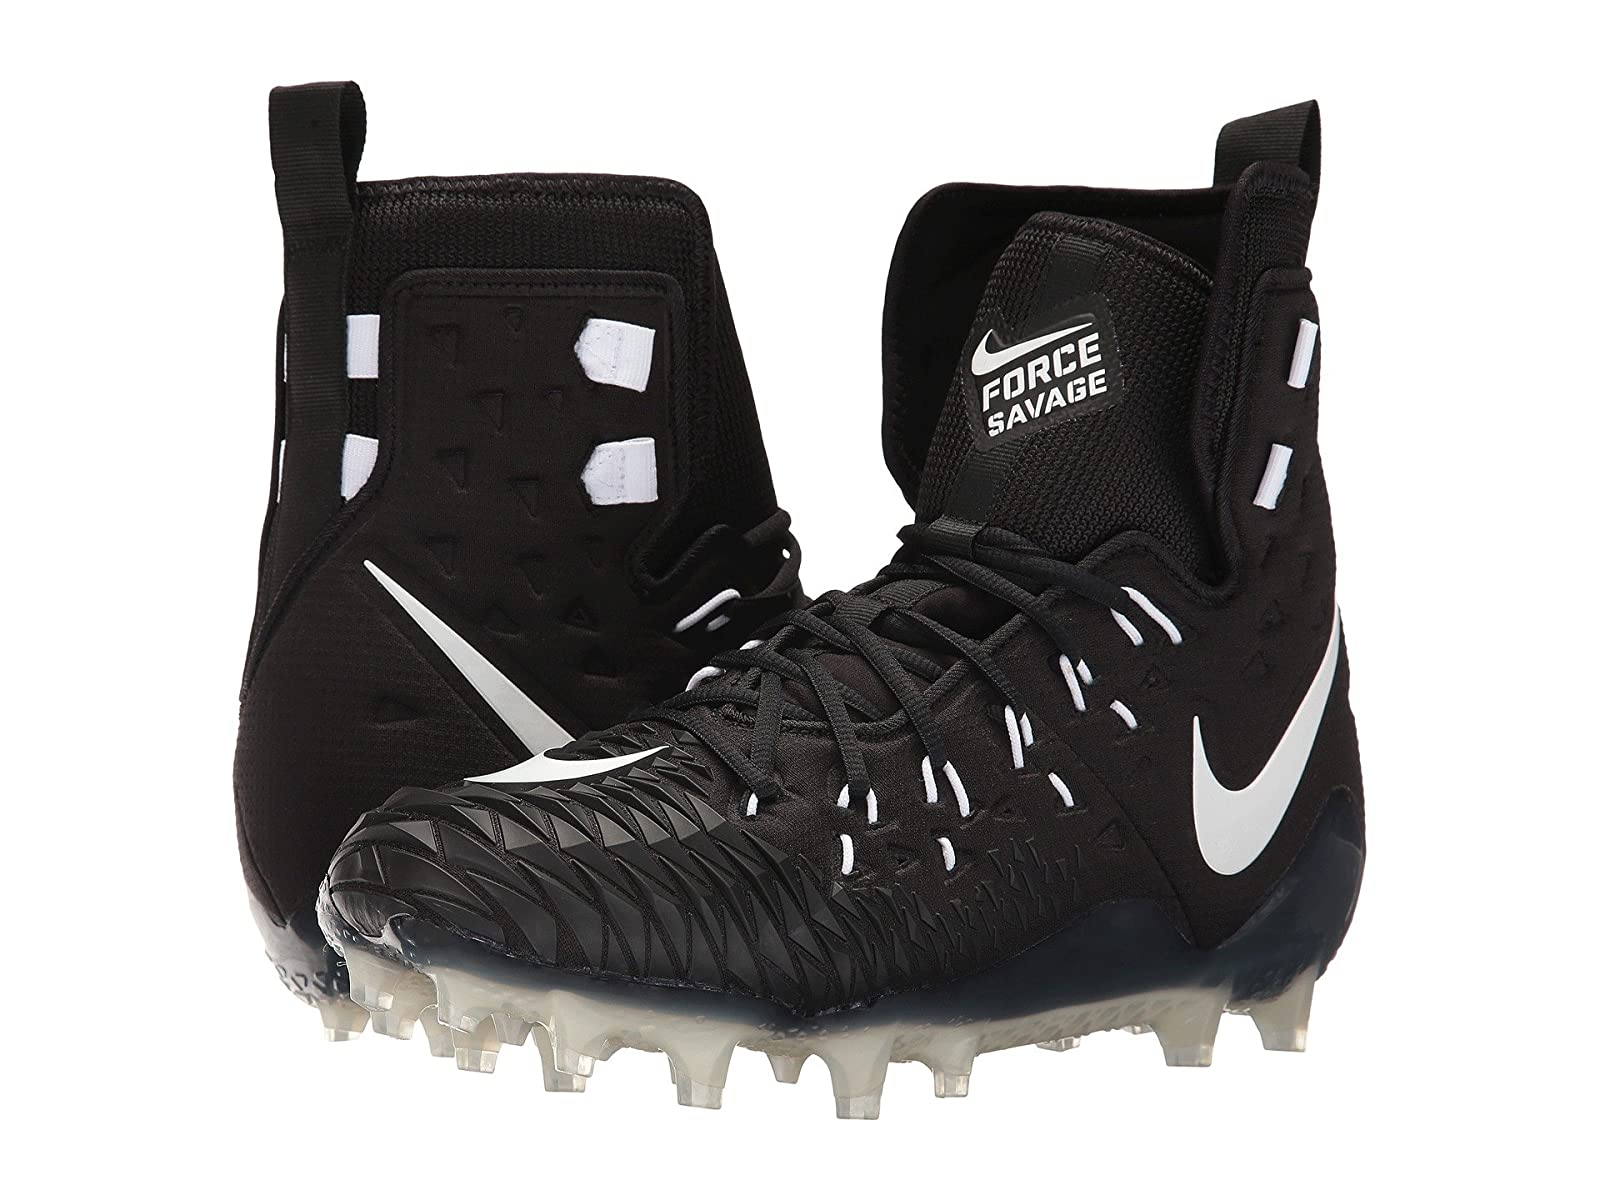 Nike Force Savage Elite TDCheap and distinctive eye-catching shoes